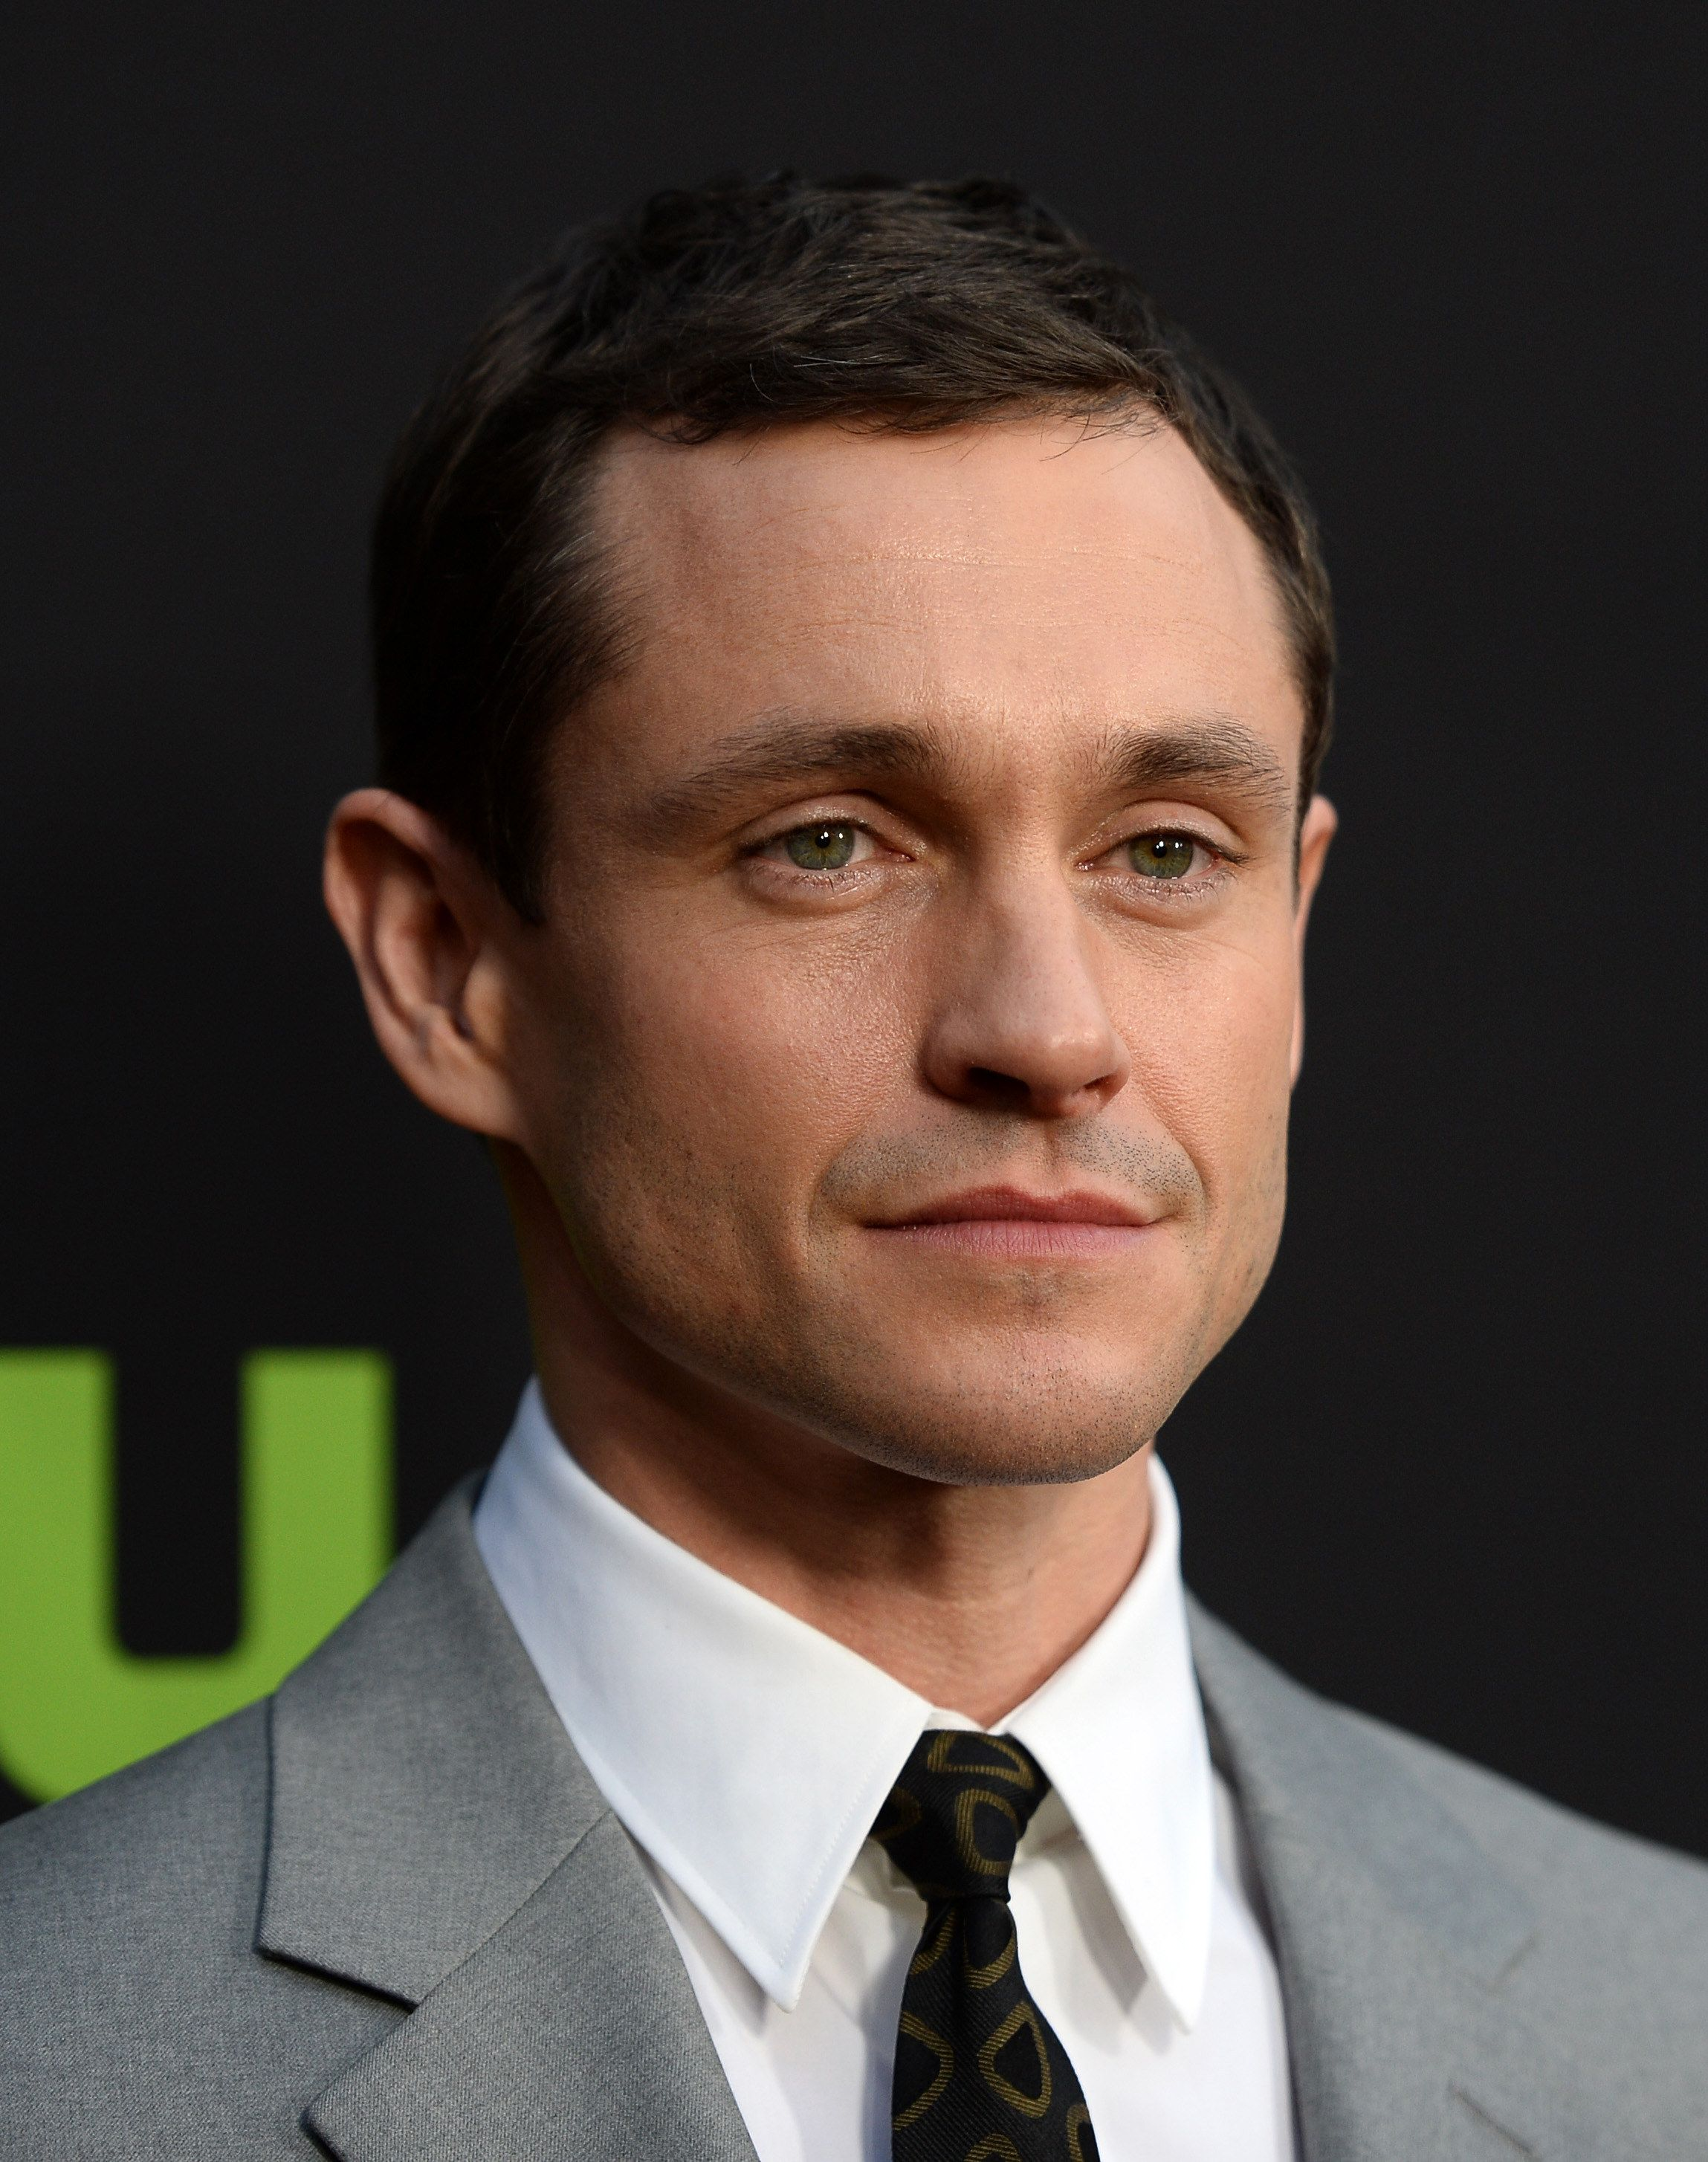 Discussion on this topic: Mekayla Diehl, hugh-dancy-born-1975/